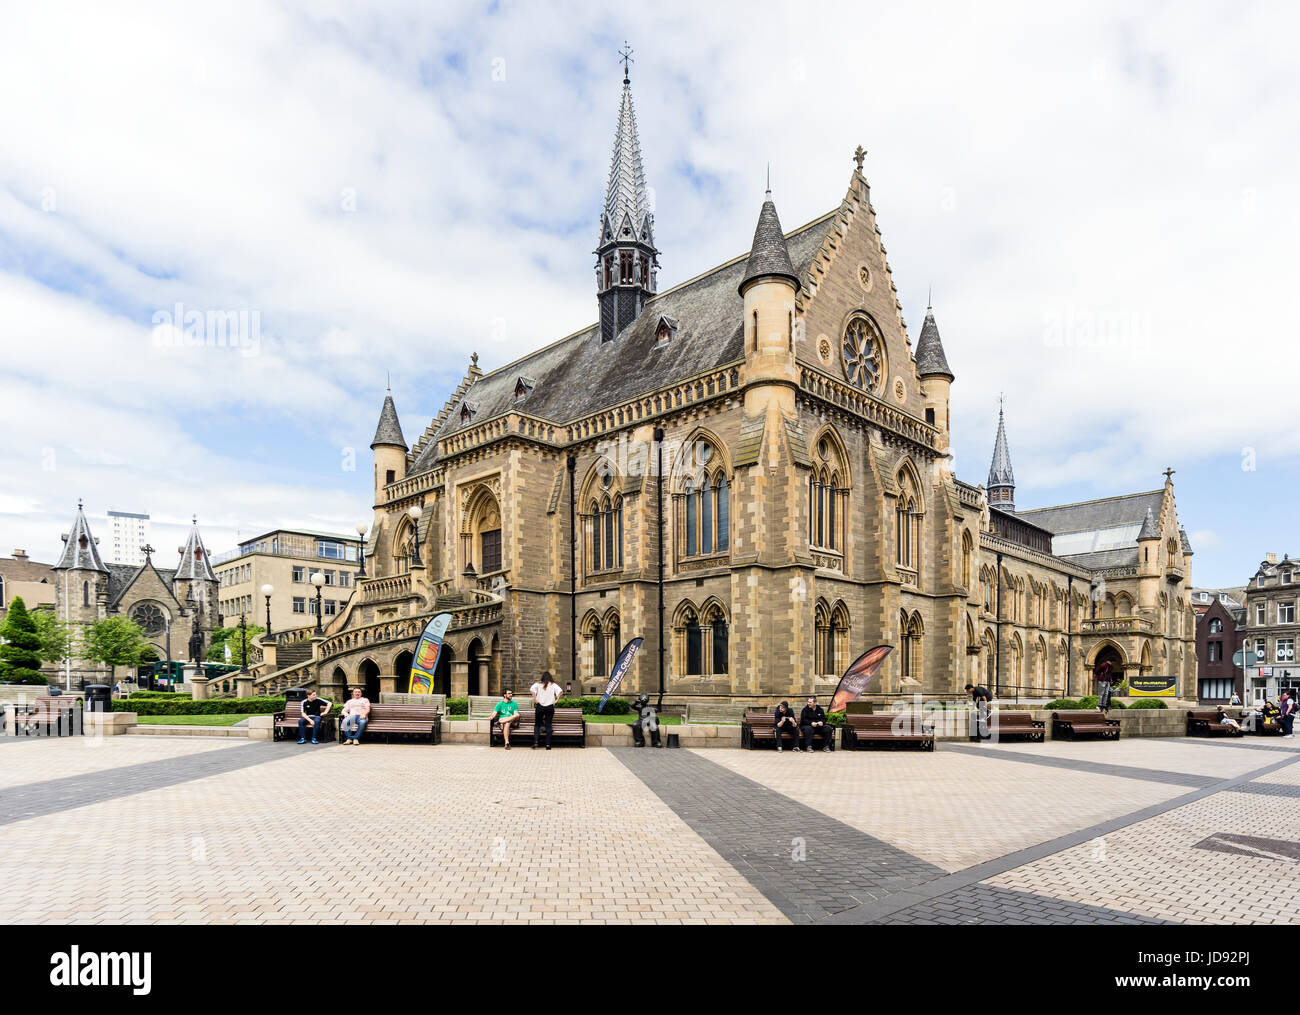 The McManus art gallery and museum in Albert Square Dundee Tayside Scotland UK - Stock Image